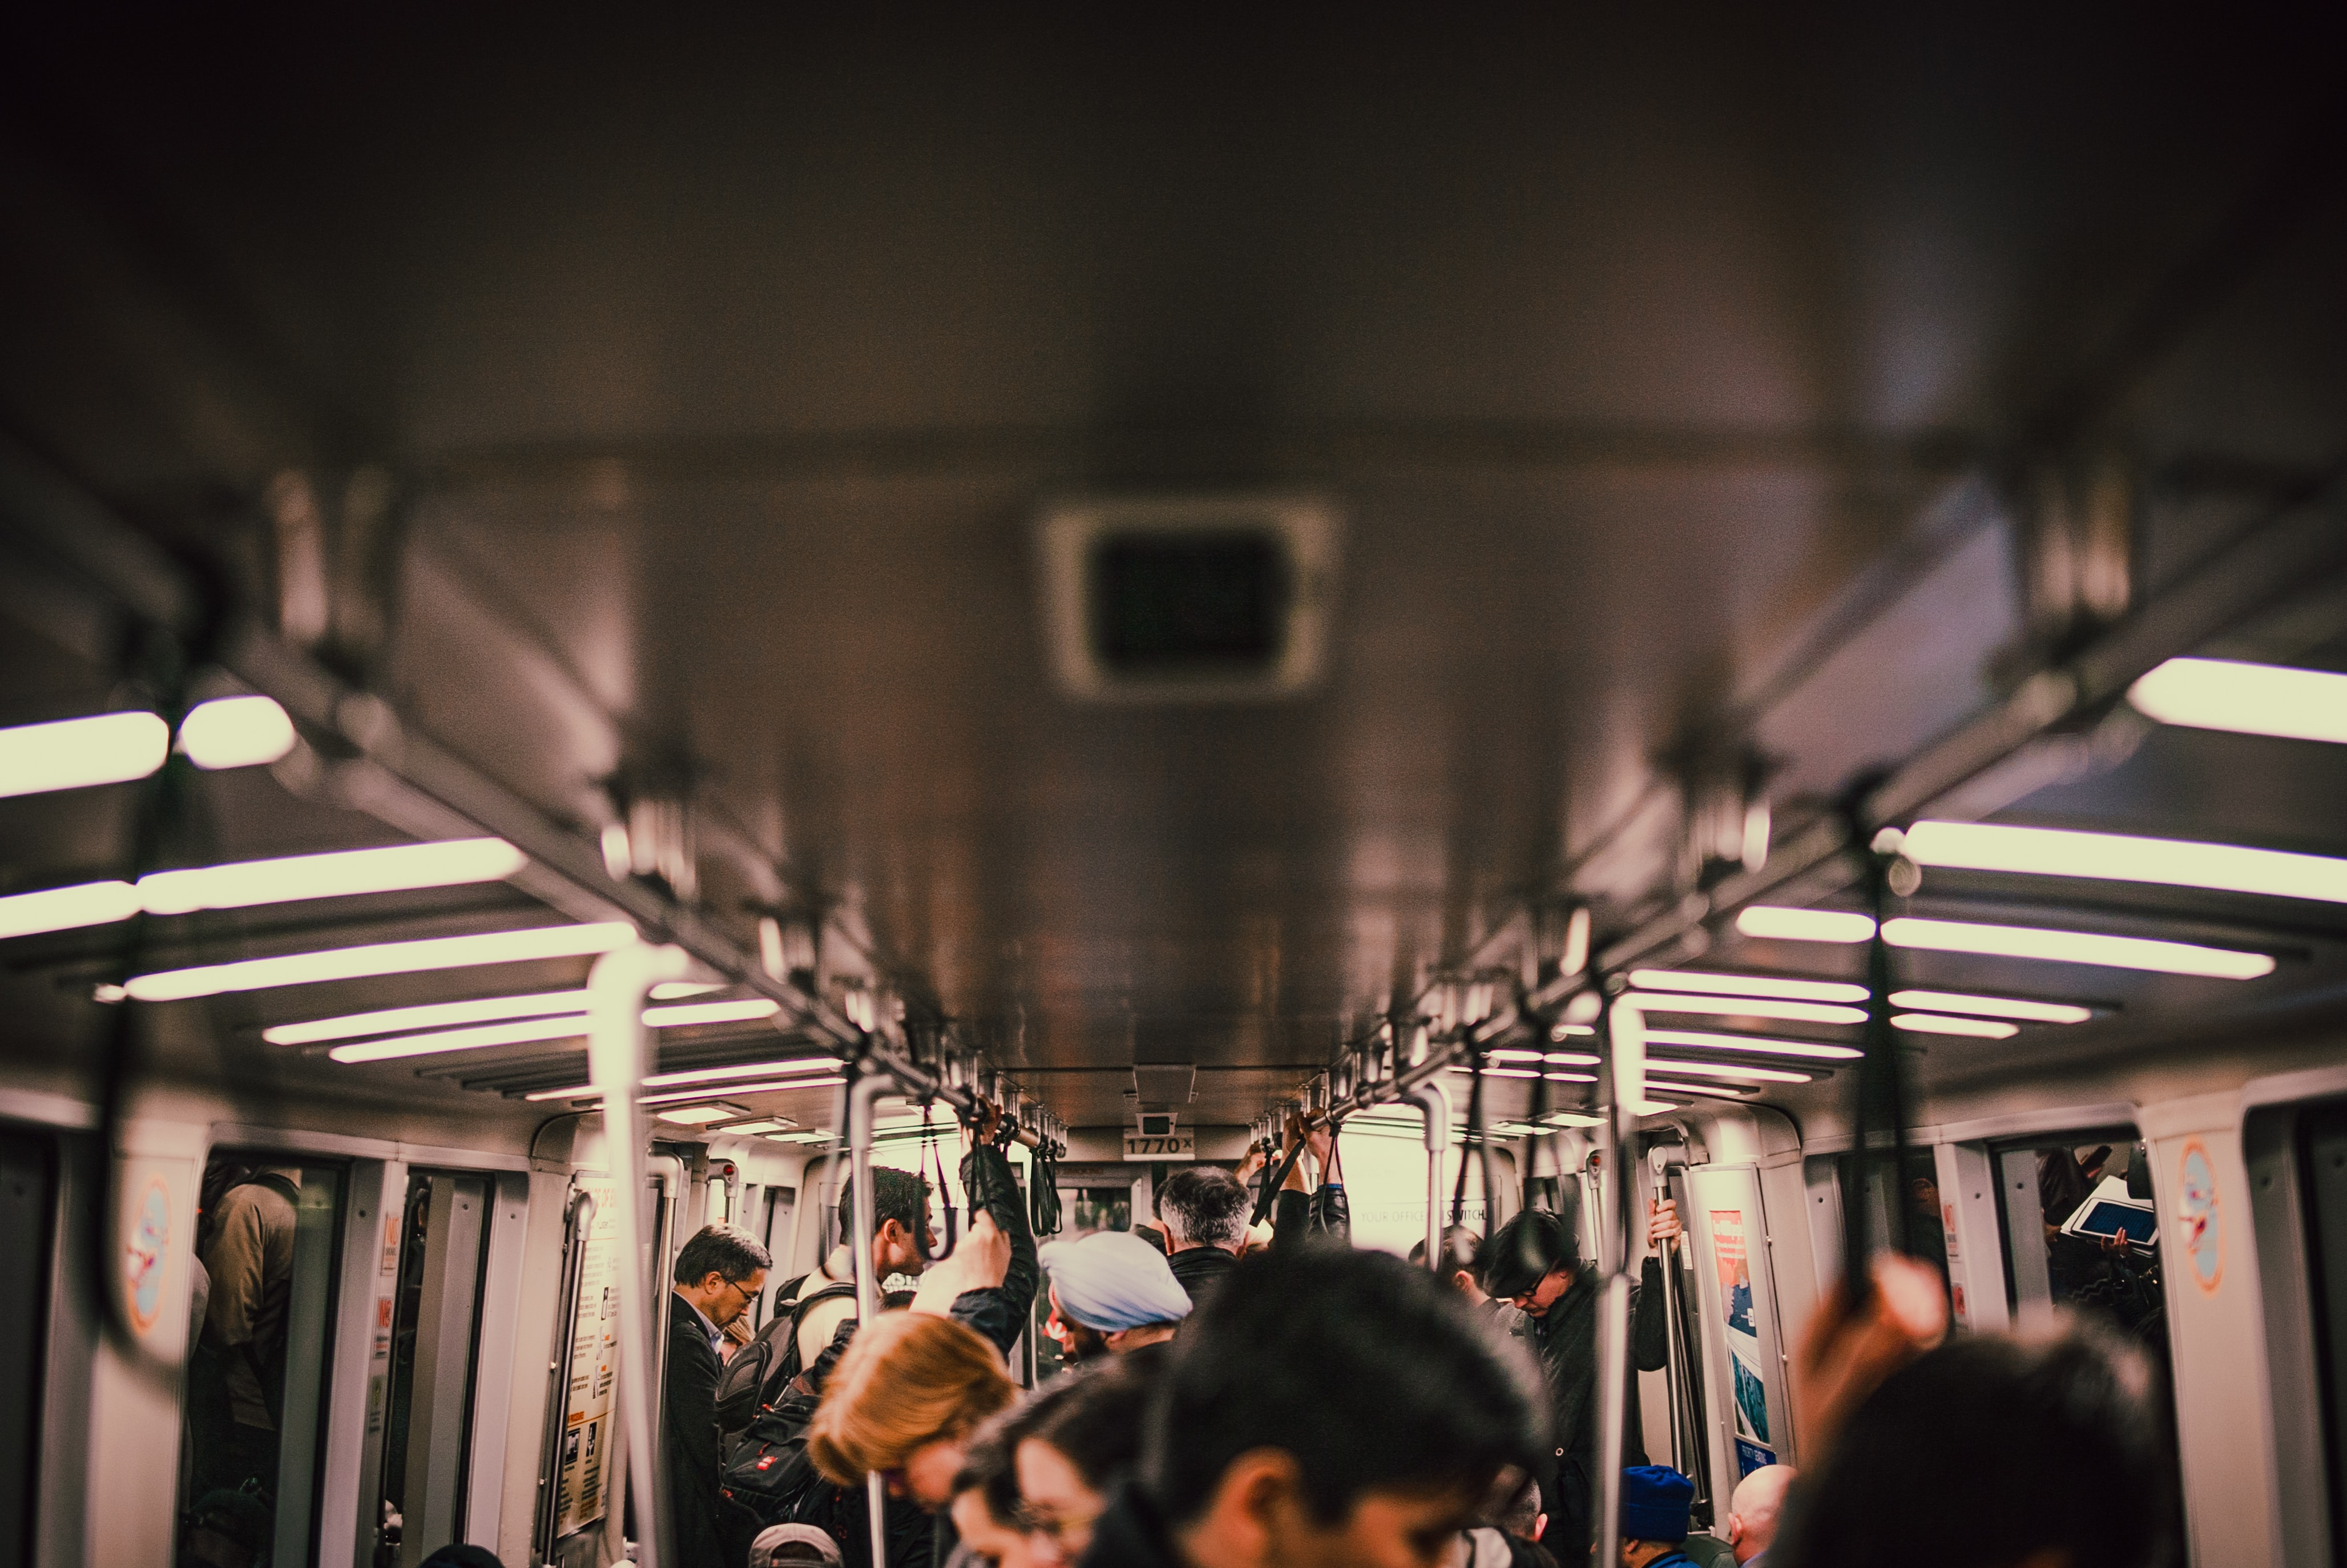 The interior of a crowded subway train